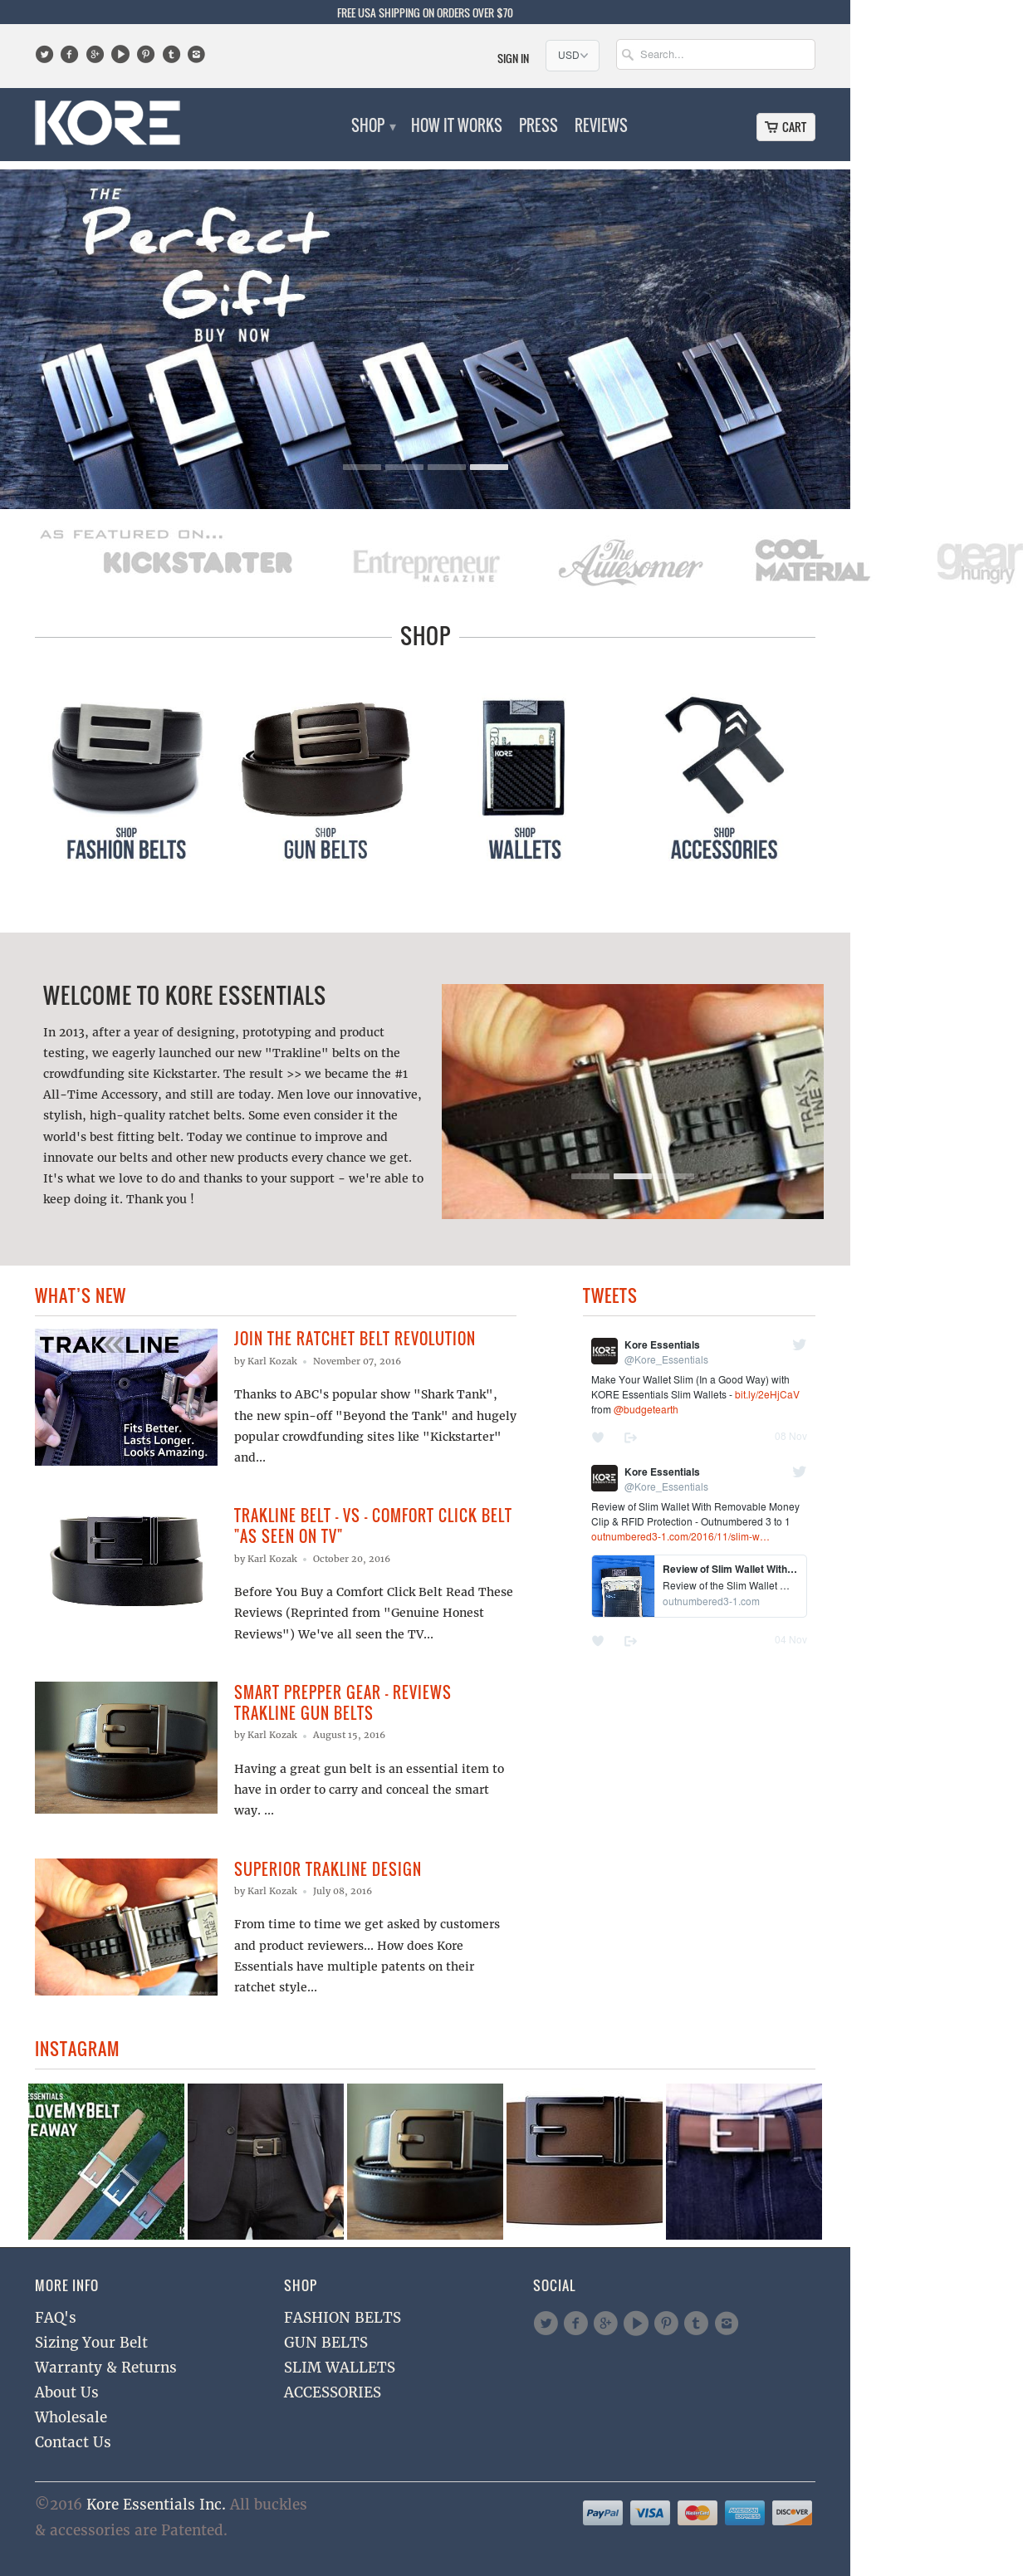 Kore Essentials S Competitors Revenue Number Of Employees Funding Acquisitions News Owler Company Profile Men's wallets, sunglasses & gun belts. kore essentials s competitors revenue